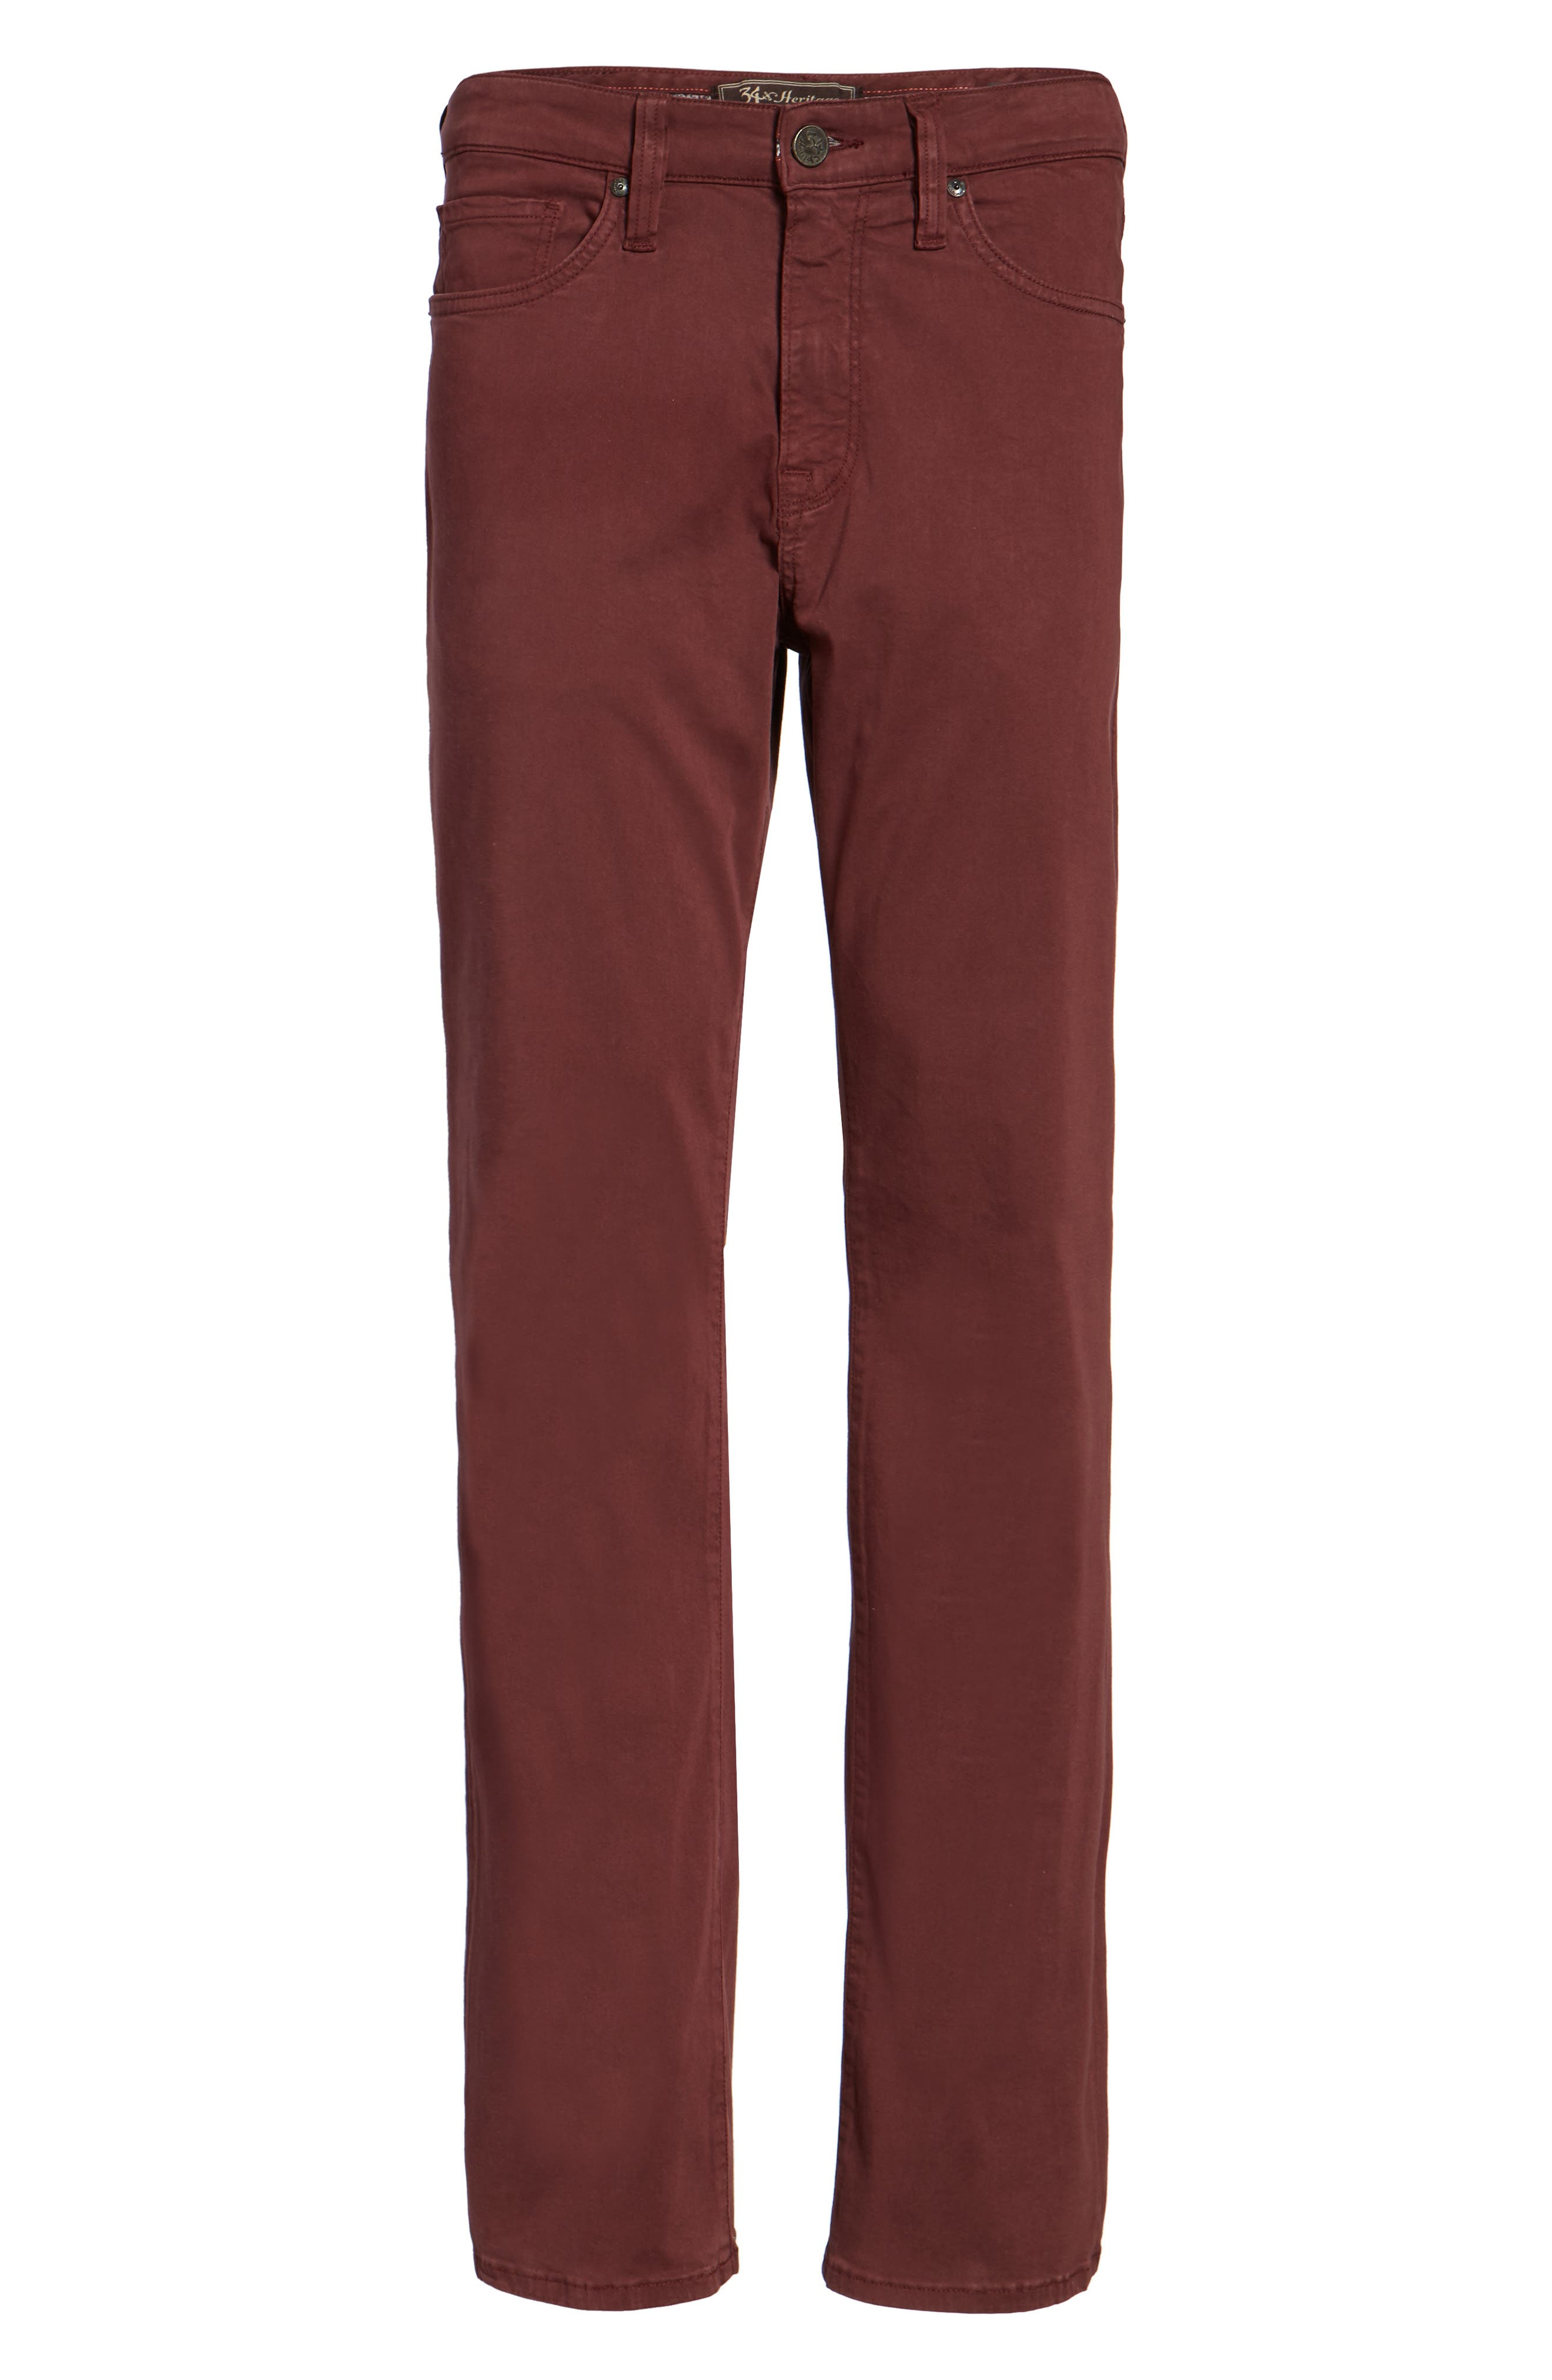 Charisma Relaxed Fit Pants,                             Alternate thumbnail 6, color,                             BORDEAUX TWILL